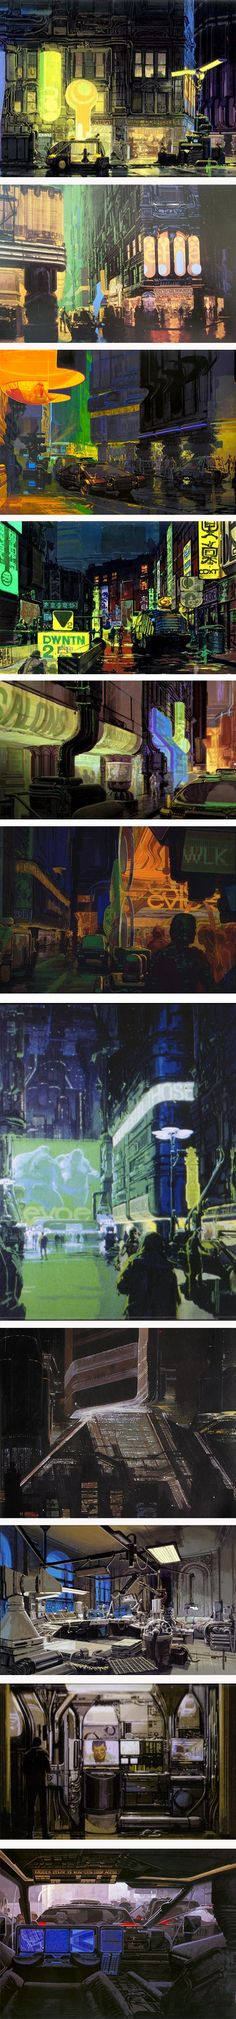 Syd Mead production paintings for Blade Runner